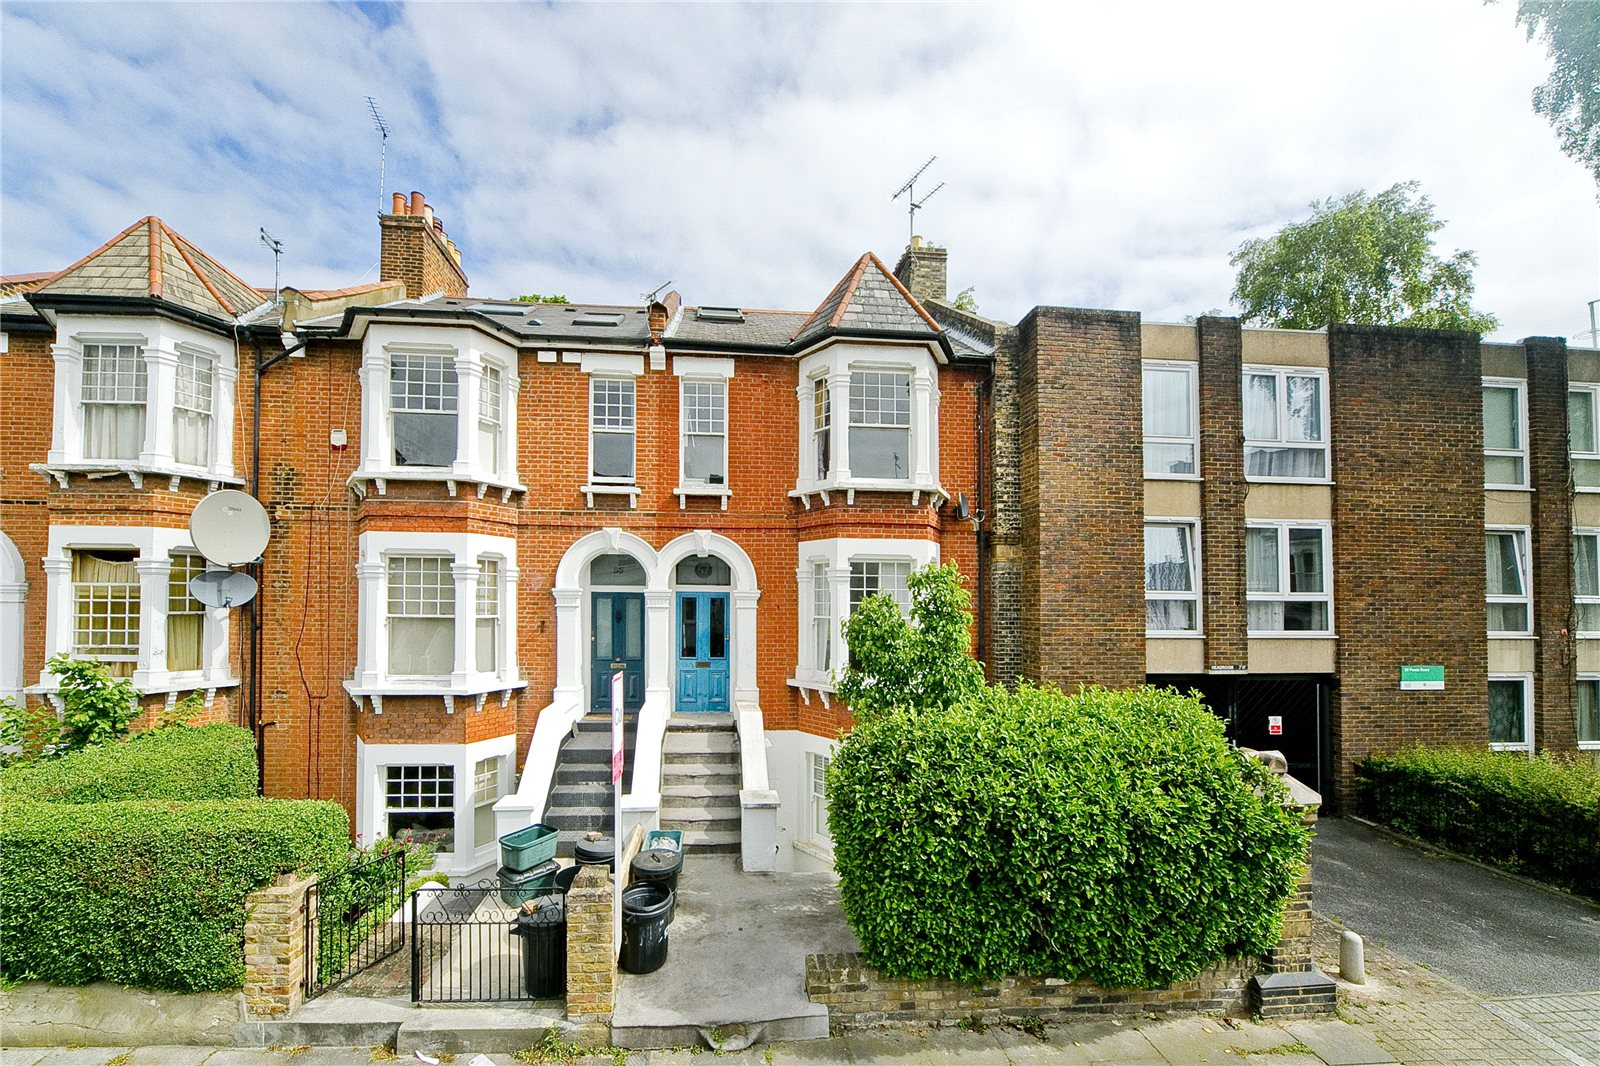 3 Bedroom Maisonette For Sale Poets Road London N5 2sh